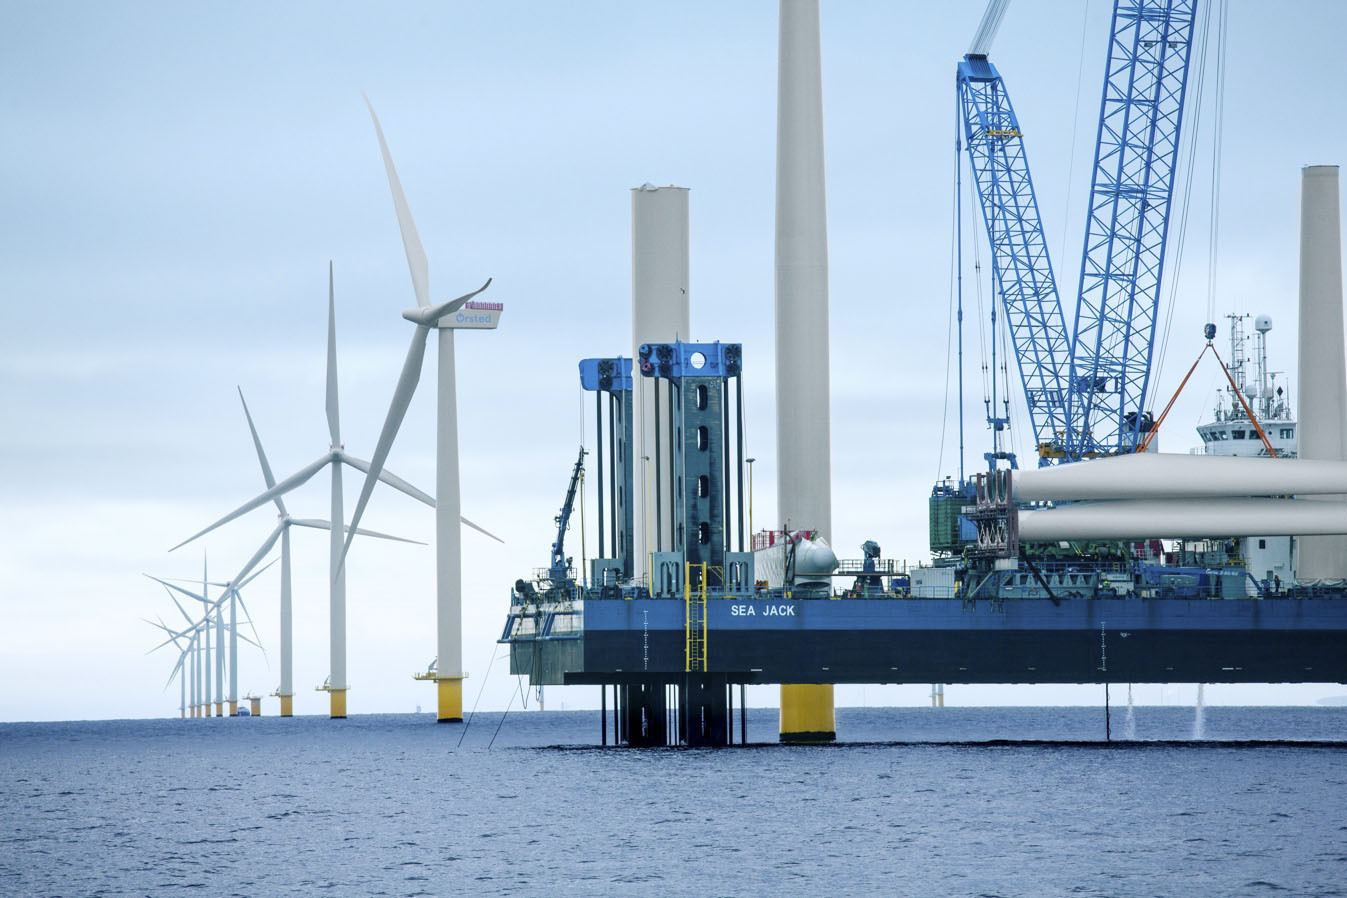 Federal regulators are reviewing proposals for how the South Fork Wind Farm should be built, including demands that its turbines be constructed away from critical fish habitat. Pictured is an Orsted wind farm being constructed off Denmark.